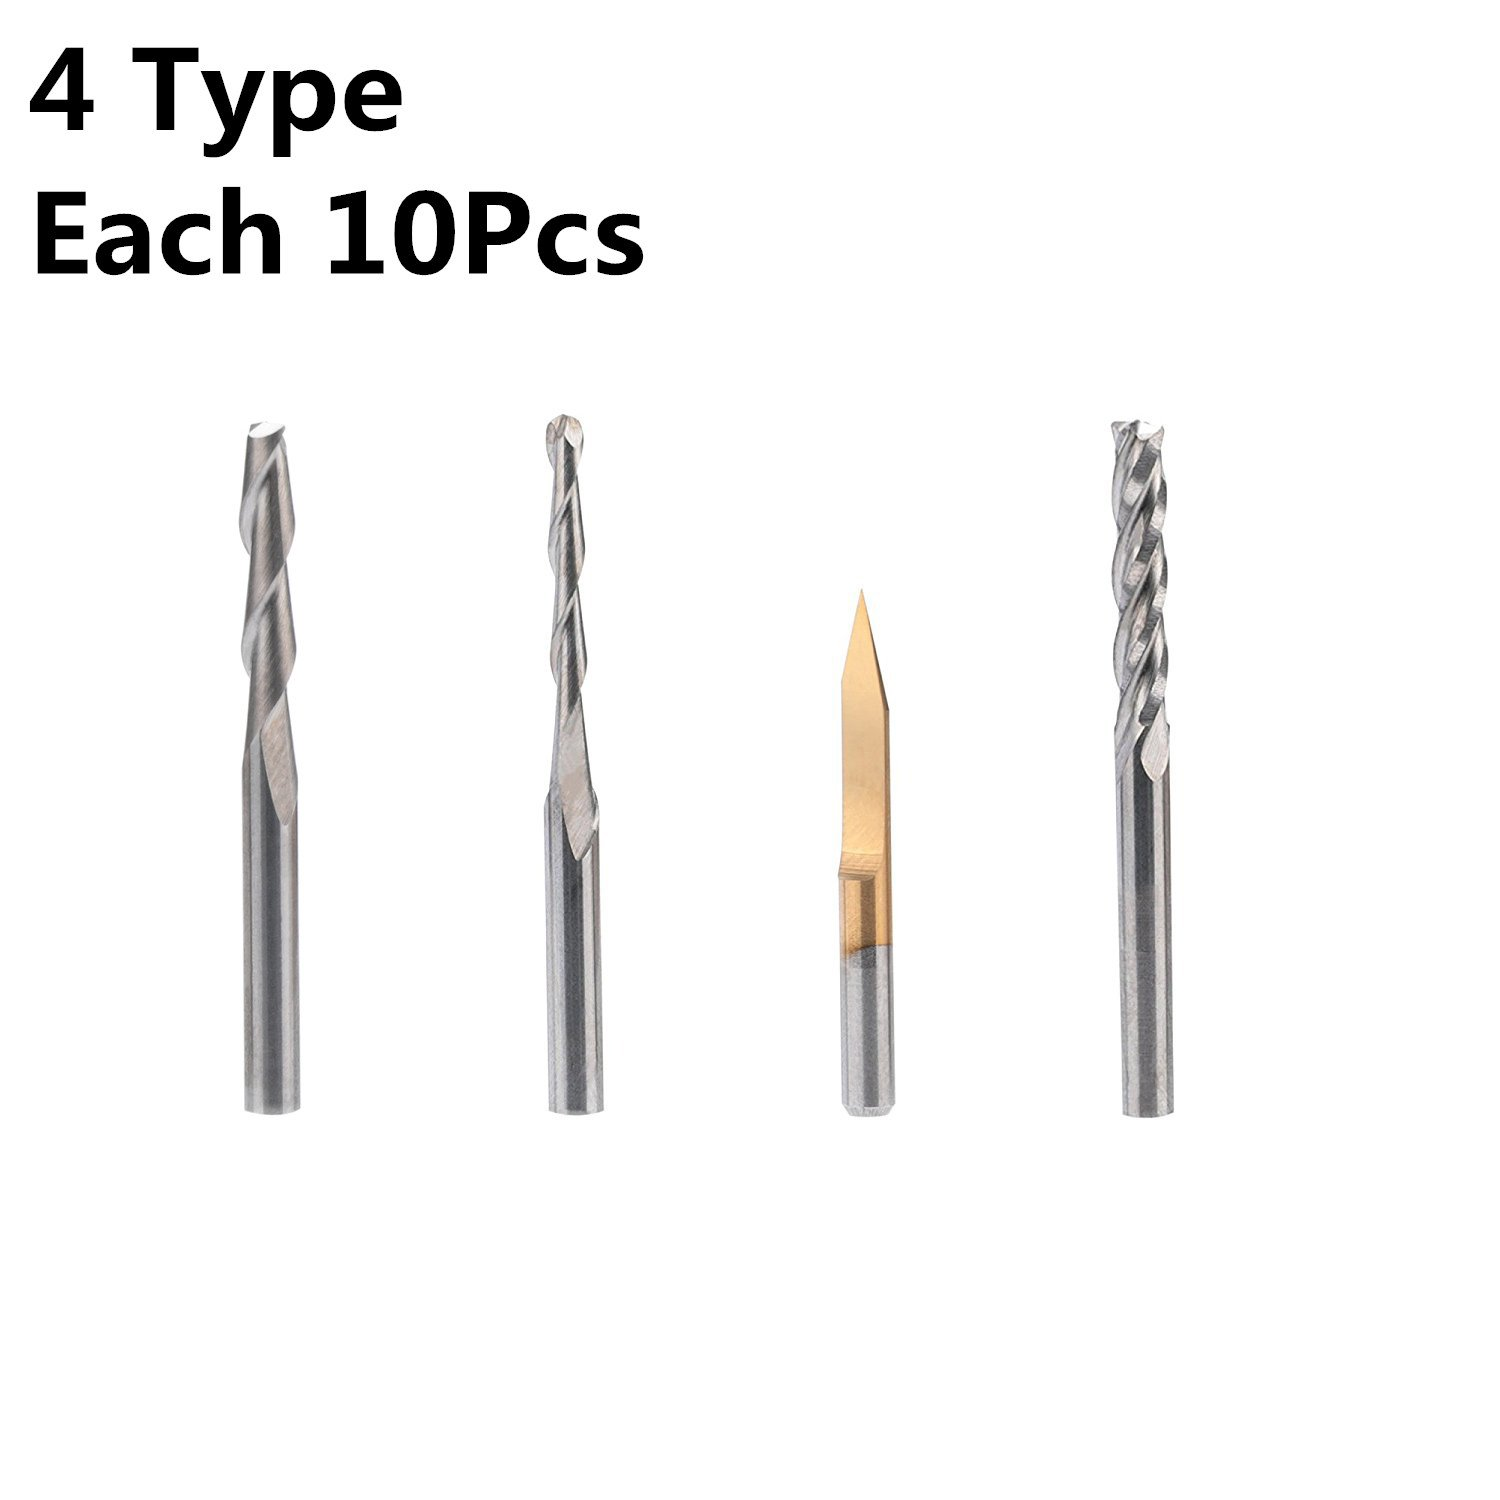 HQMaster End Mill Combination Kit Set CNC Router Bits Cutter Cutting Milling Tool (4 Type, Each 10Pcs) Including Flat Nose/Ball Nose End Mill, 30° V-shape Engraving Bits and 4 Flutes End Mill by HQMaster (Image #1)